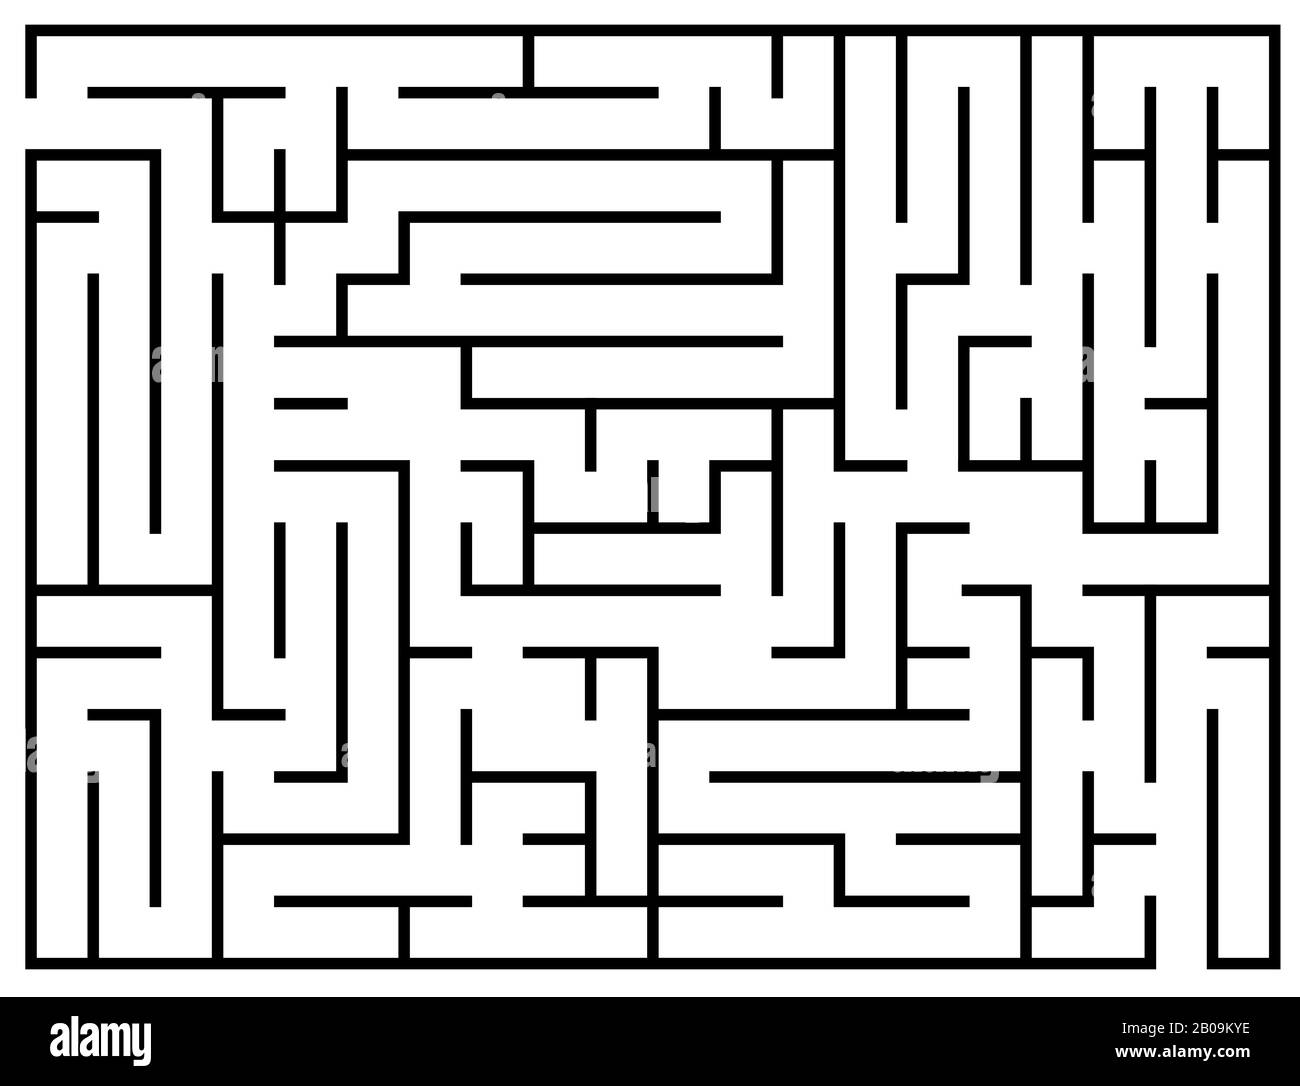 Kids riddle, maze puzzle, labyrinth vector illustration. Labyrinth game for brain, educational game preschool for development Stock Vector